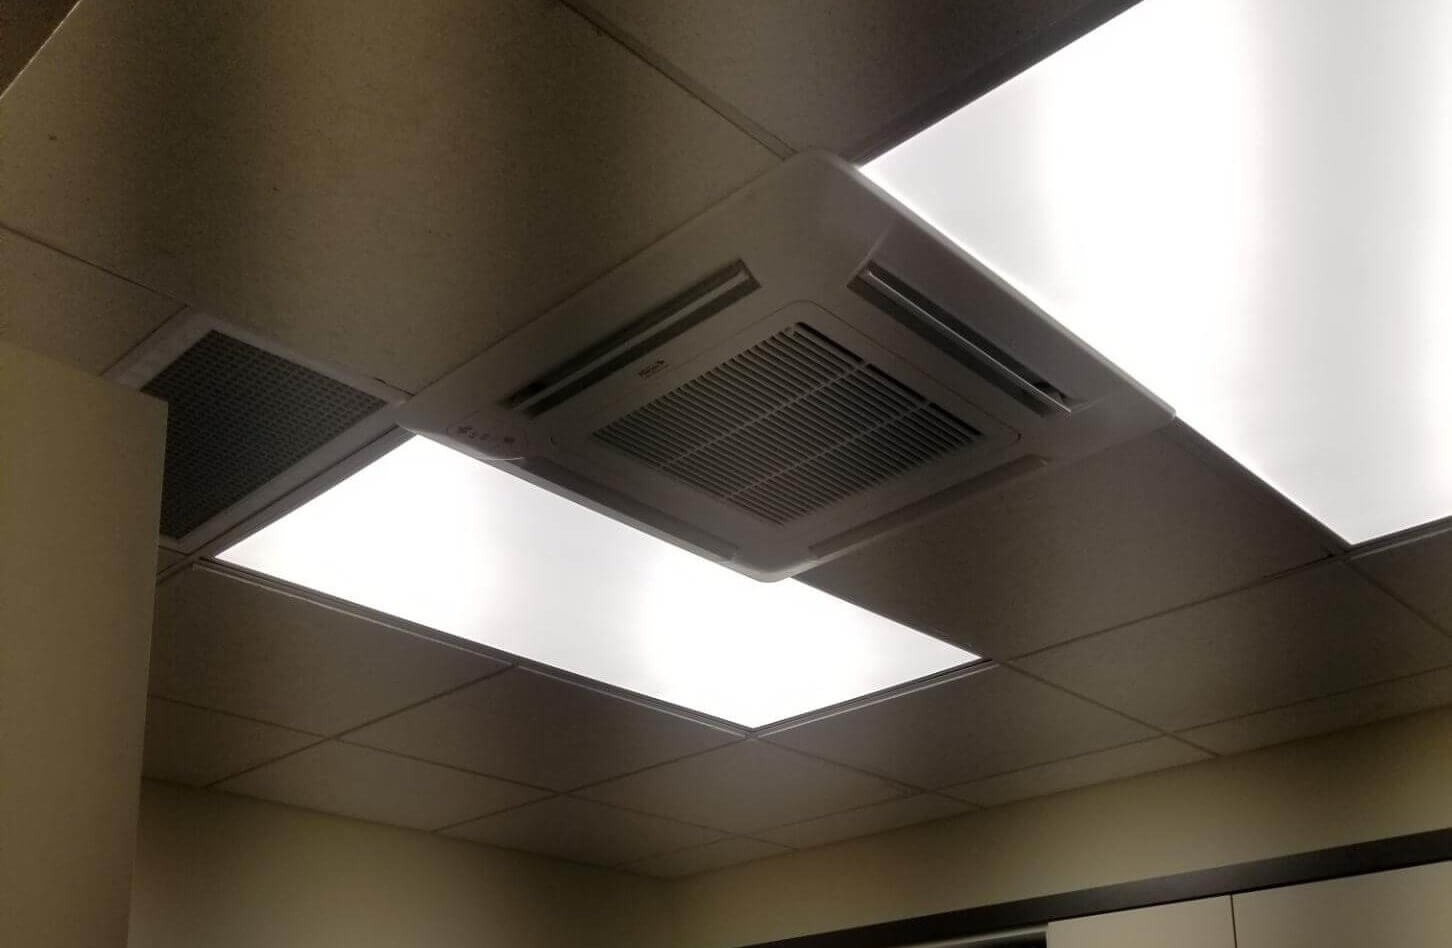 Air conditioner vent in office